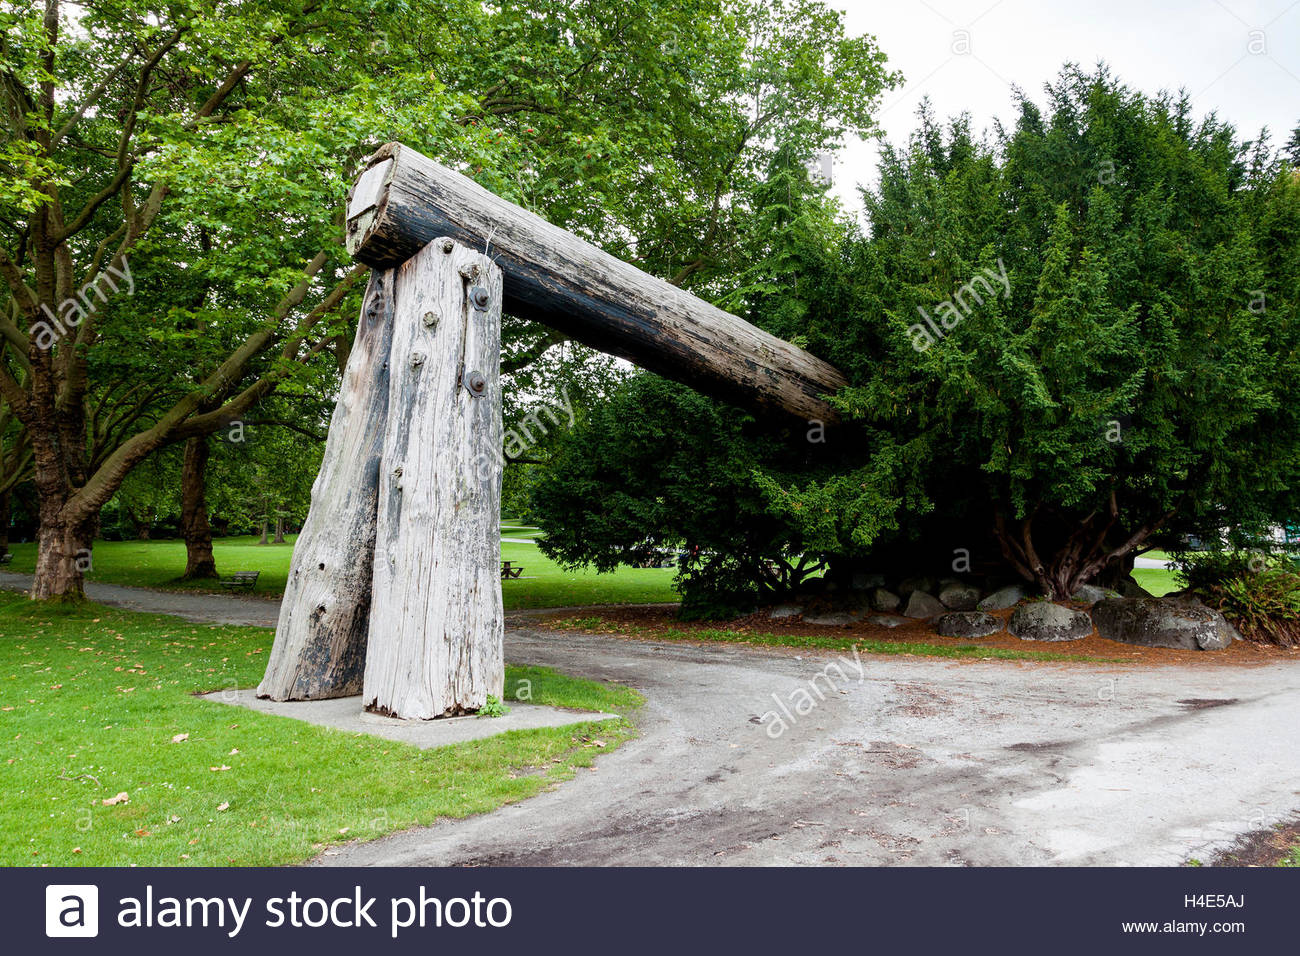 Museum of Vancouver Vancouver, Lumberman's Arch at Stanley Park in Vancouver. The single log ...